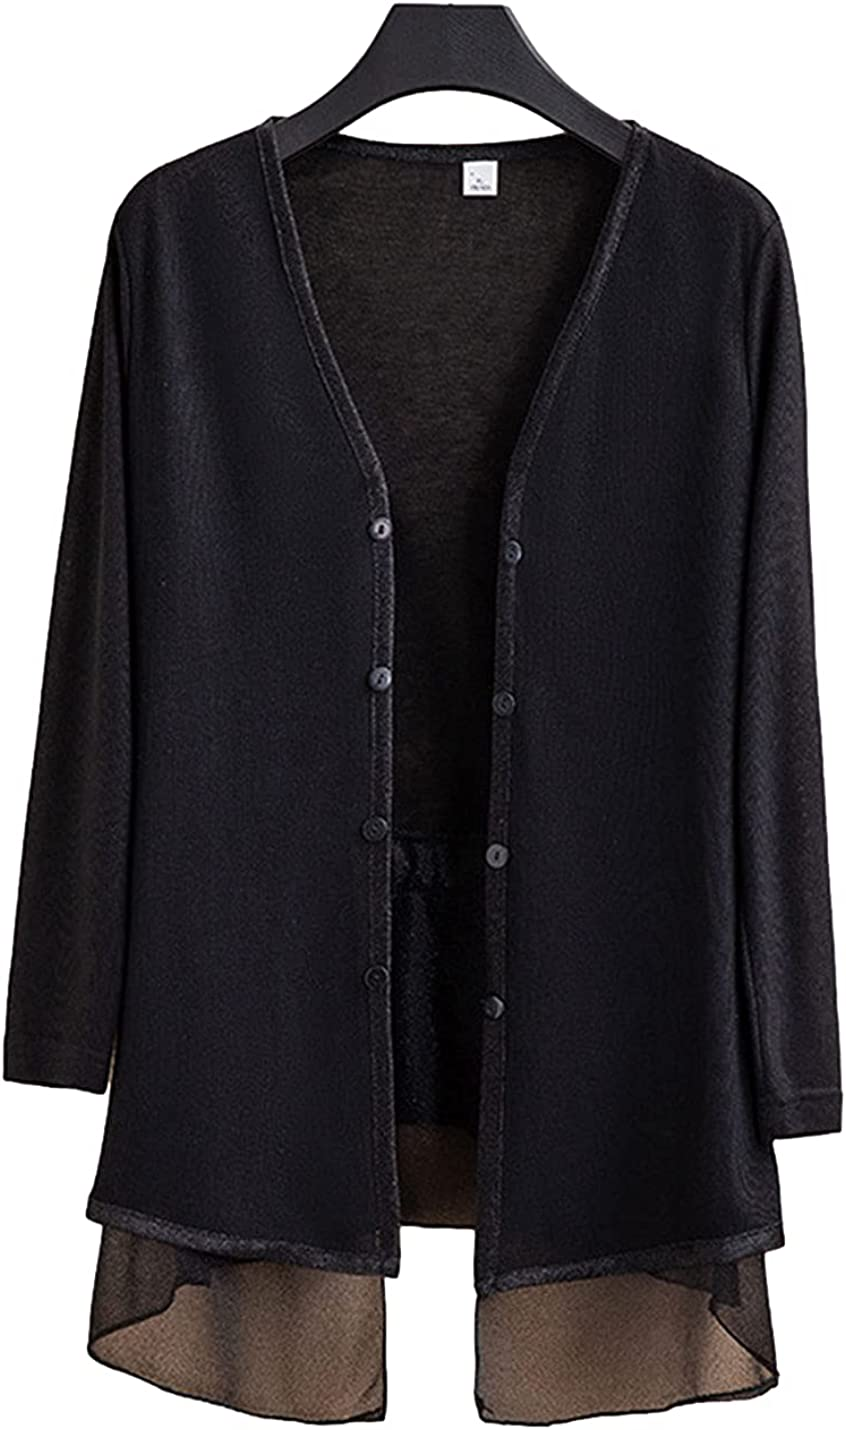 FindThy Women's 3/4 Sleeve Fake Double-Layer Cardigan Sheer Shrug Sweater Knitwear with Drawstring